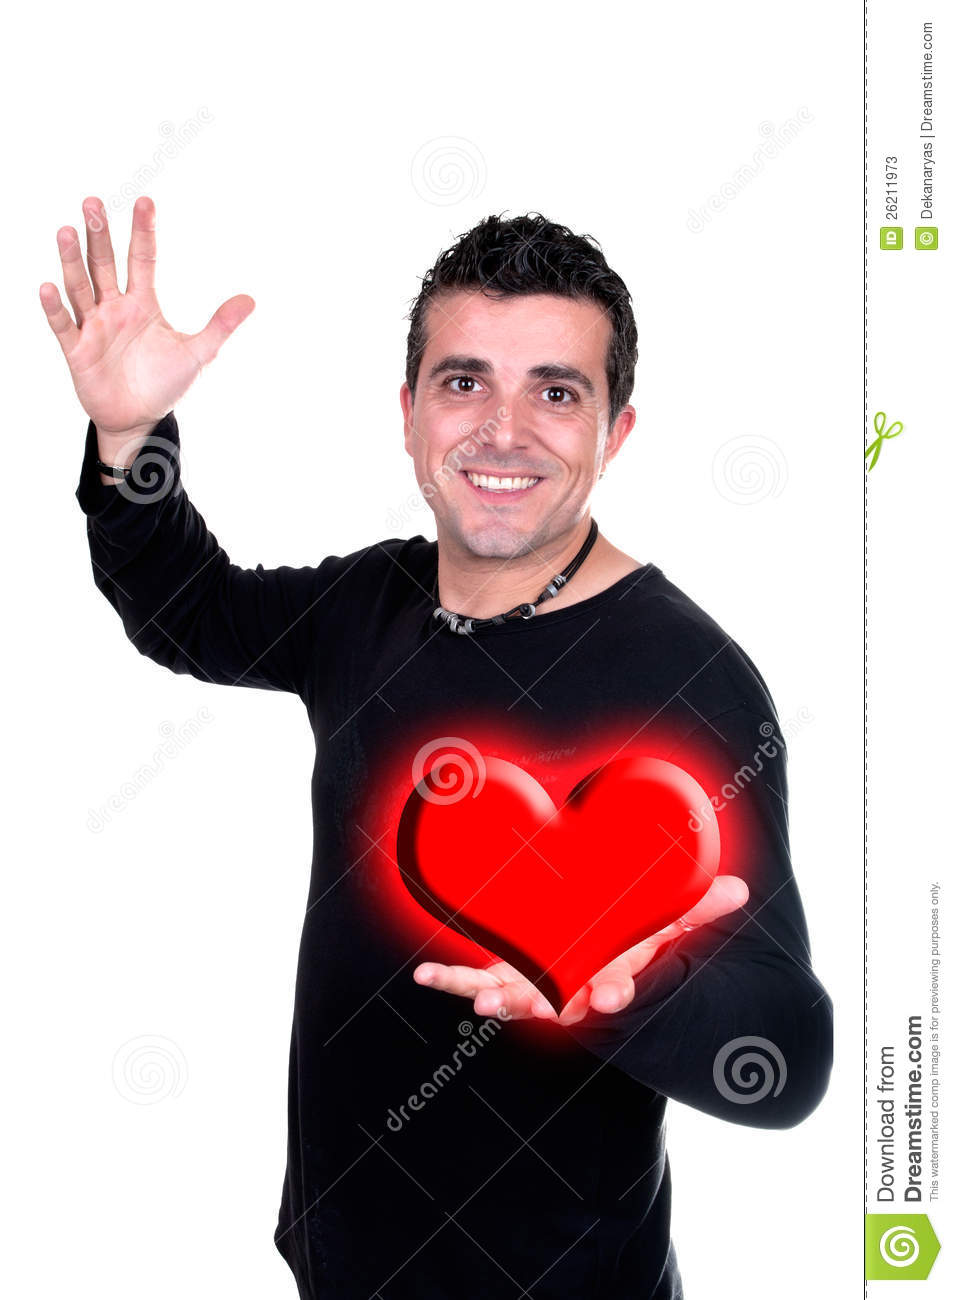 Smiling man with Valentin heart in hand